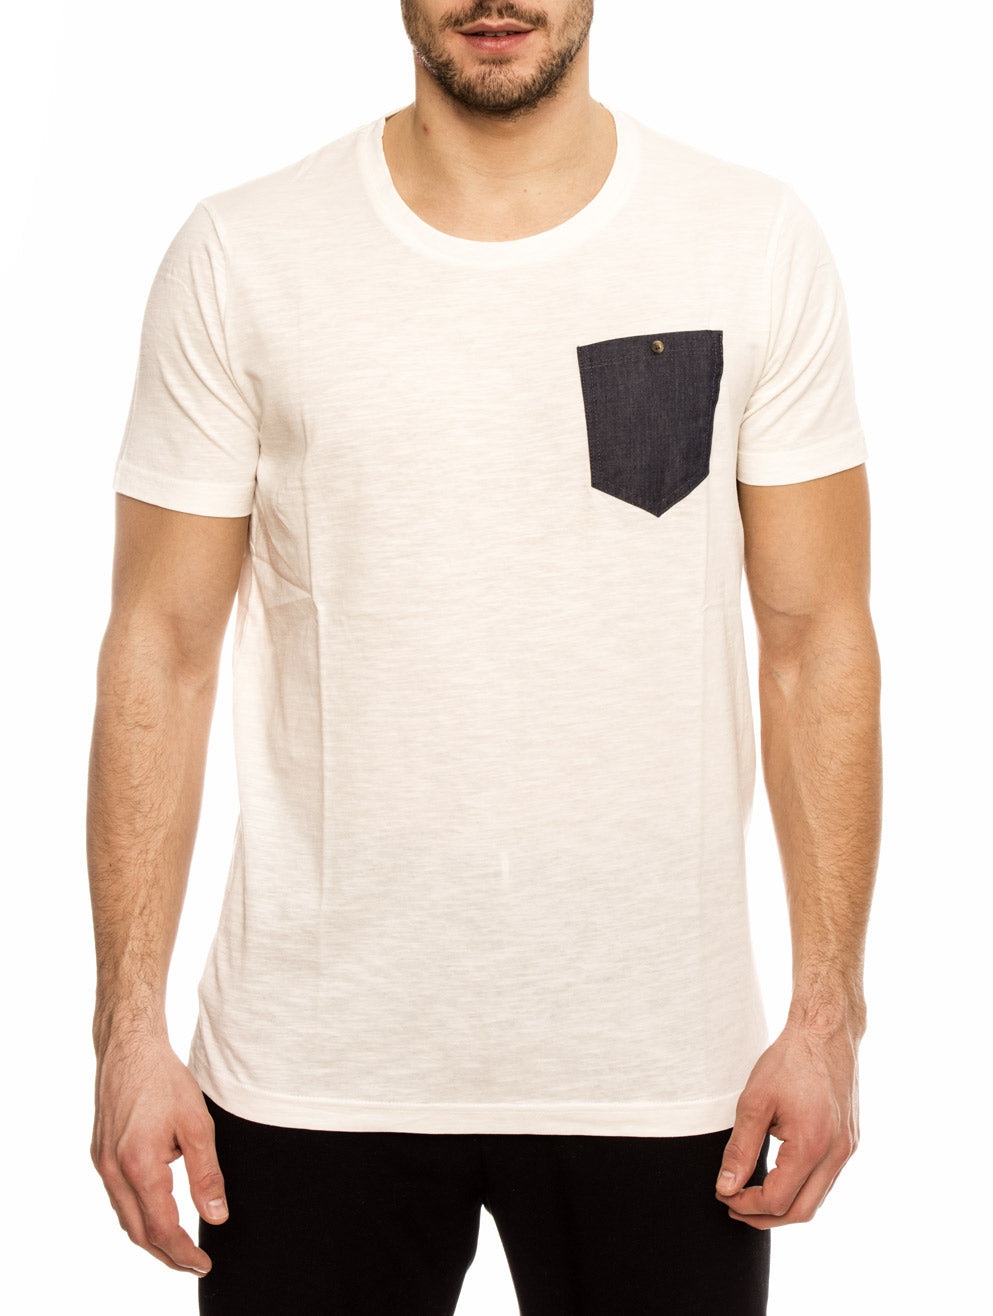 CAYMAN COTTON T-SHIRT IN CLASSIC WHITE